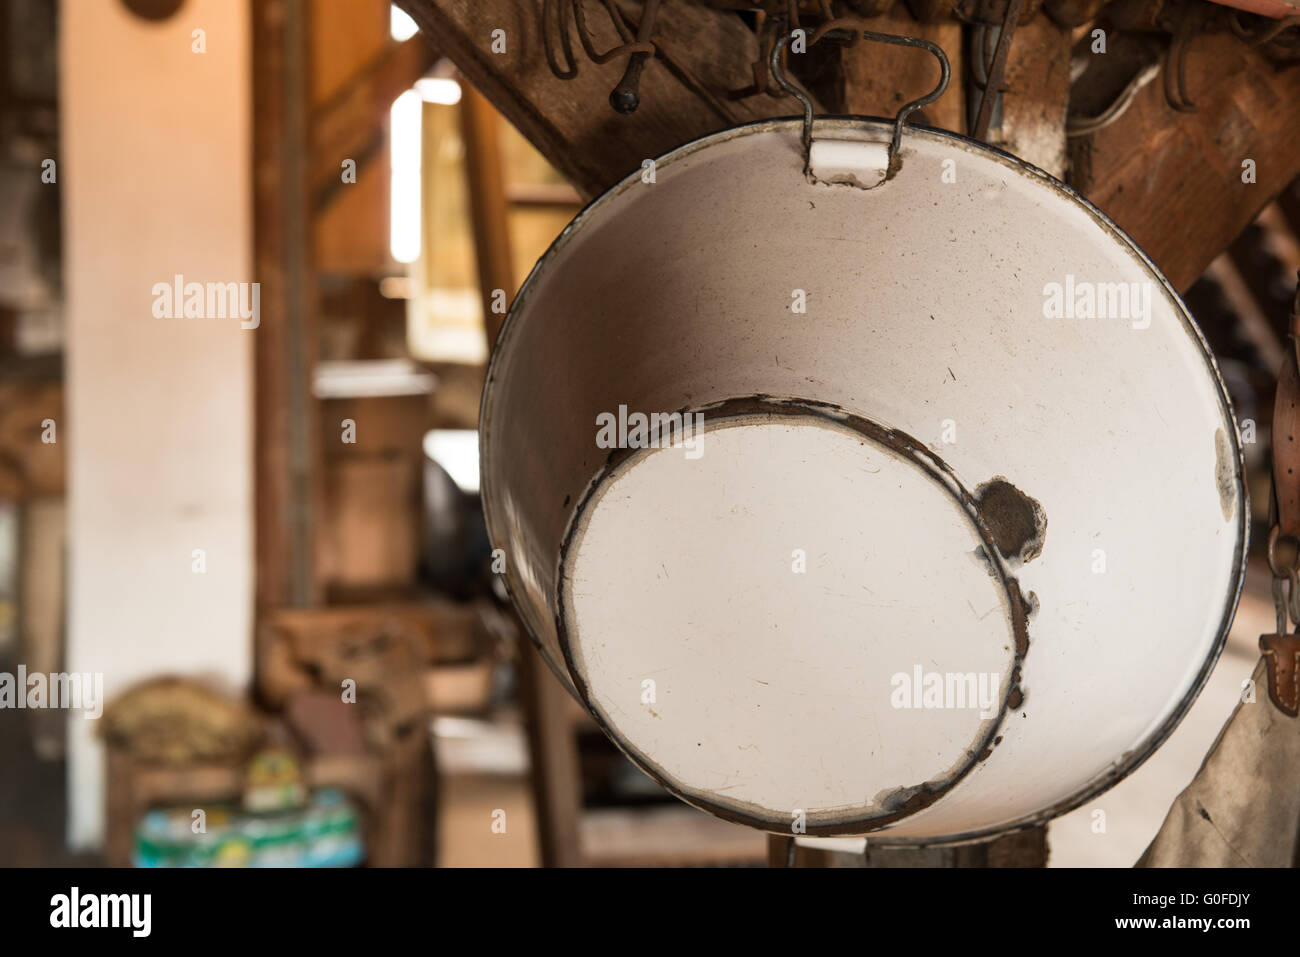 Old Enamel Bowl on an Attic - Stock Image